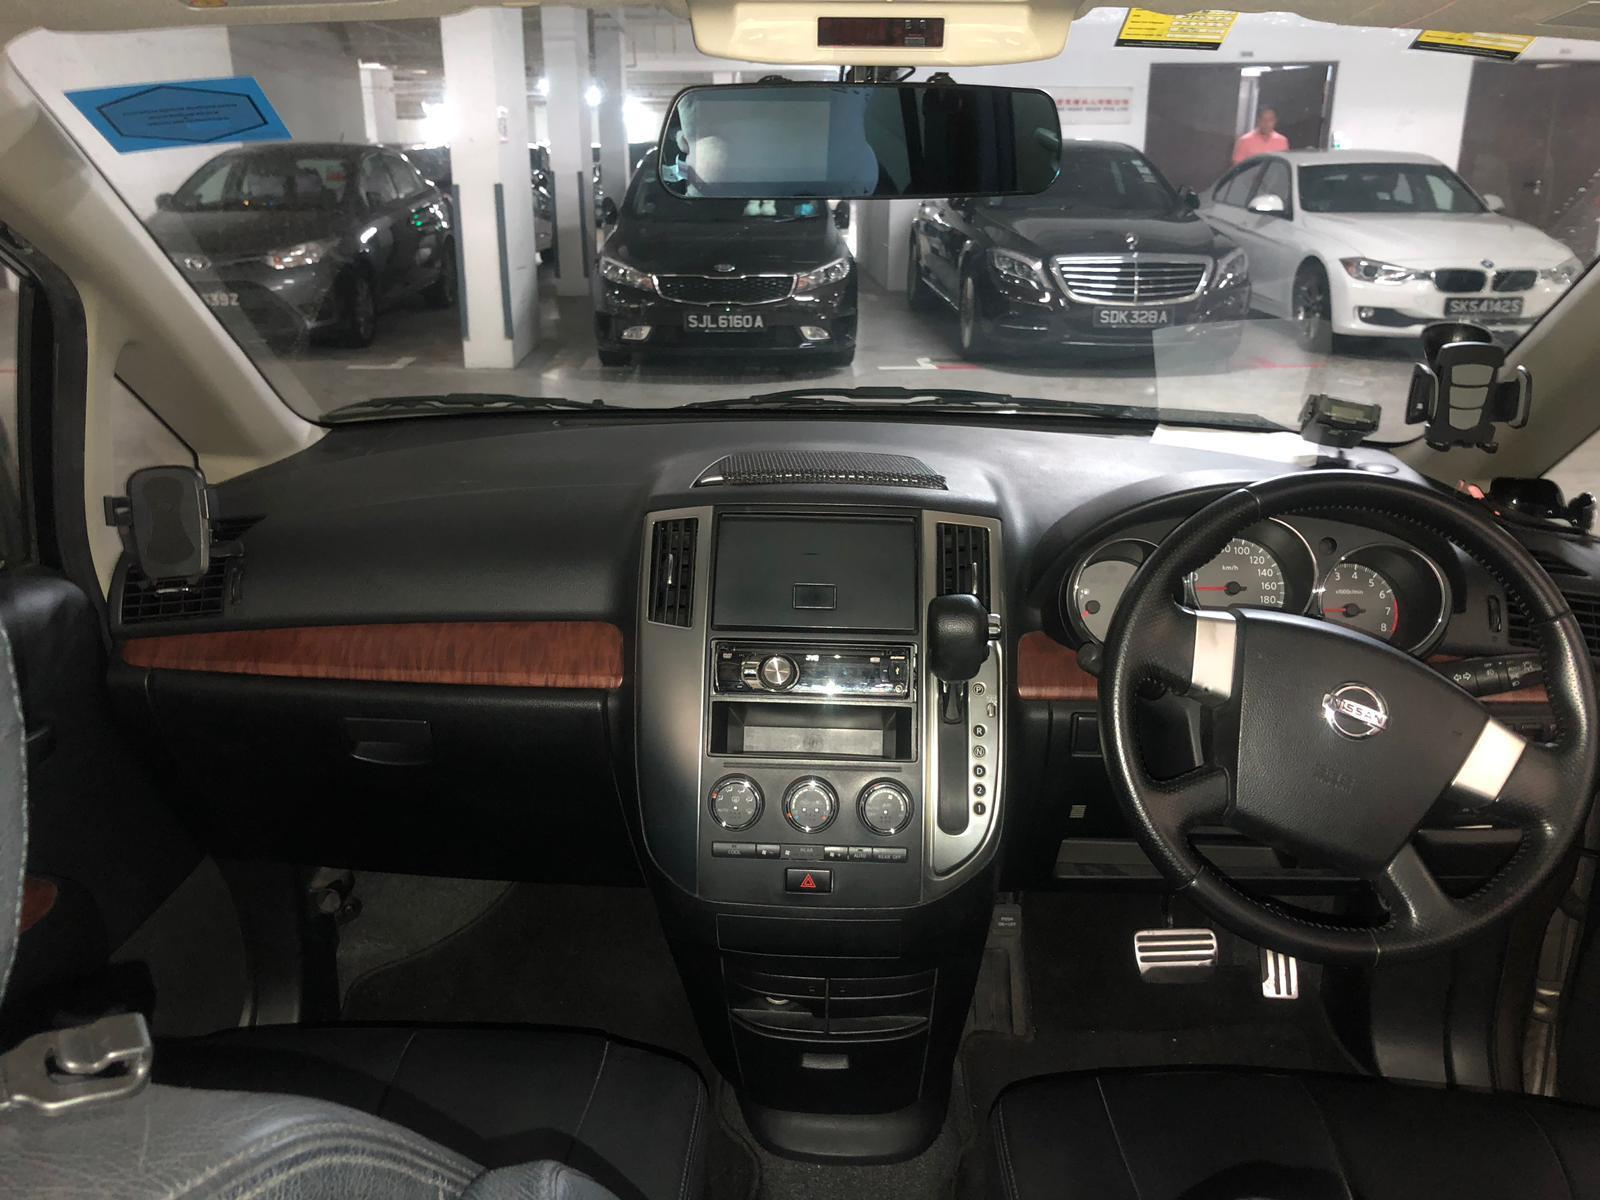 Nissan Presage (RENT CHEAPEST RENTAL AVAILABLE FOR Grab/Ryde/Personal USE)